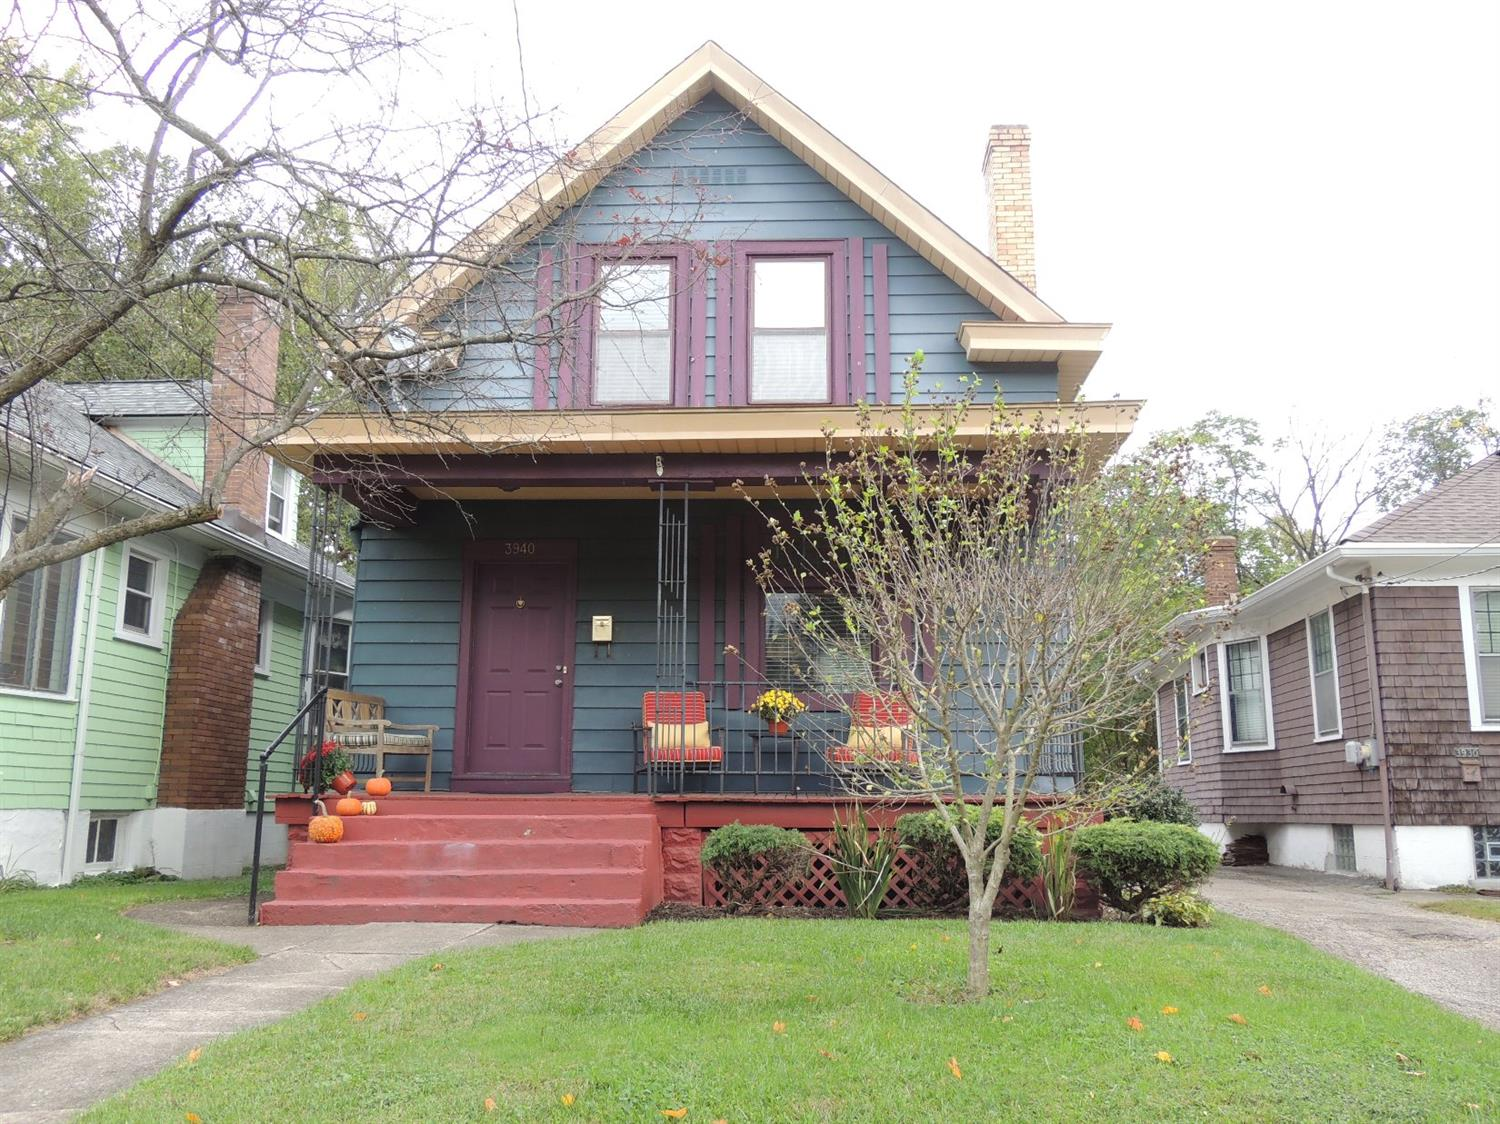 Character and updates abound this charming 2 story home in the heart of Oakley.  Refinished wood floors, updated kitchen and bath.  Large bedrooms with plenty of closet space.  A/C '17, high-e furnace '15, some windows '16.  3 original stained glass windows.  Fenced yard and detached garage.  Walk to Rookwood and Oakley Square. Easy 71 access.